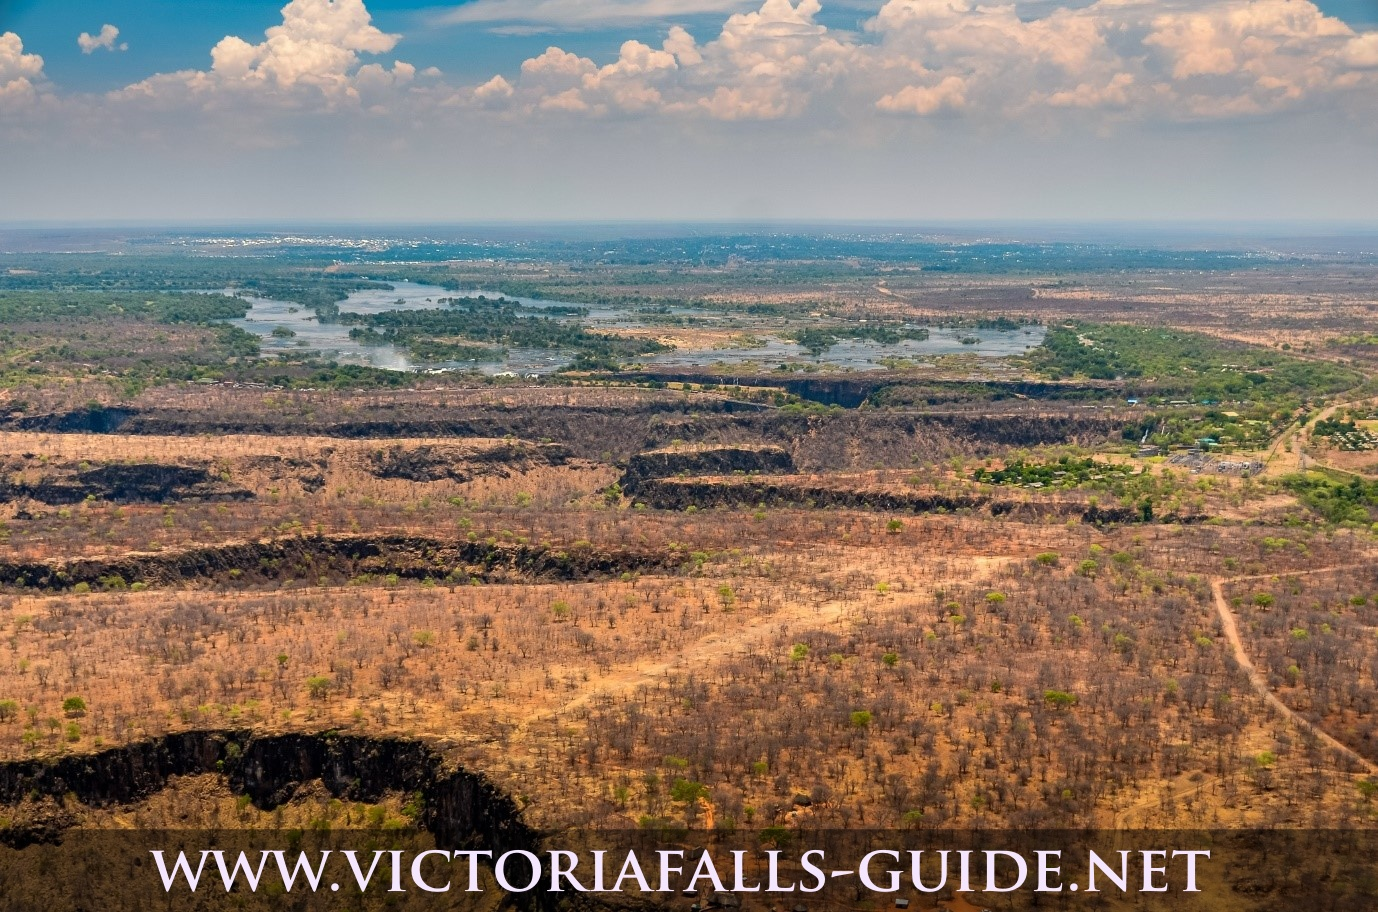 Aerial image of downstream Victoria Falls showing change in angle of altitude